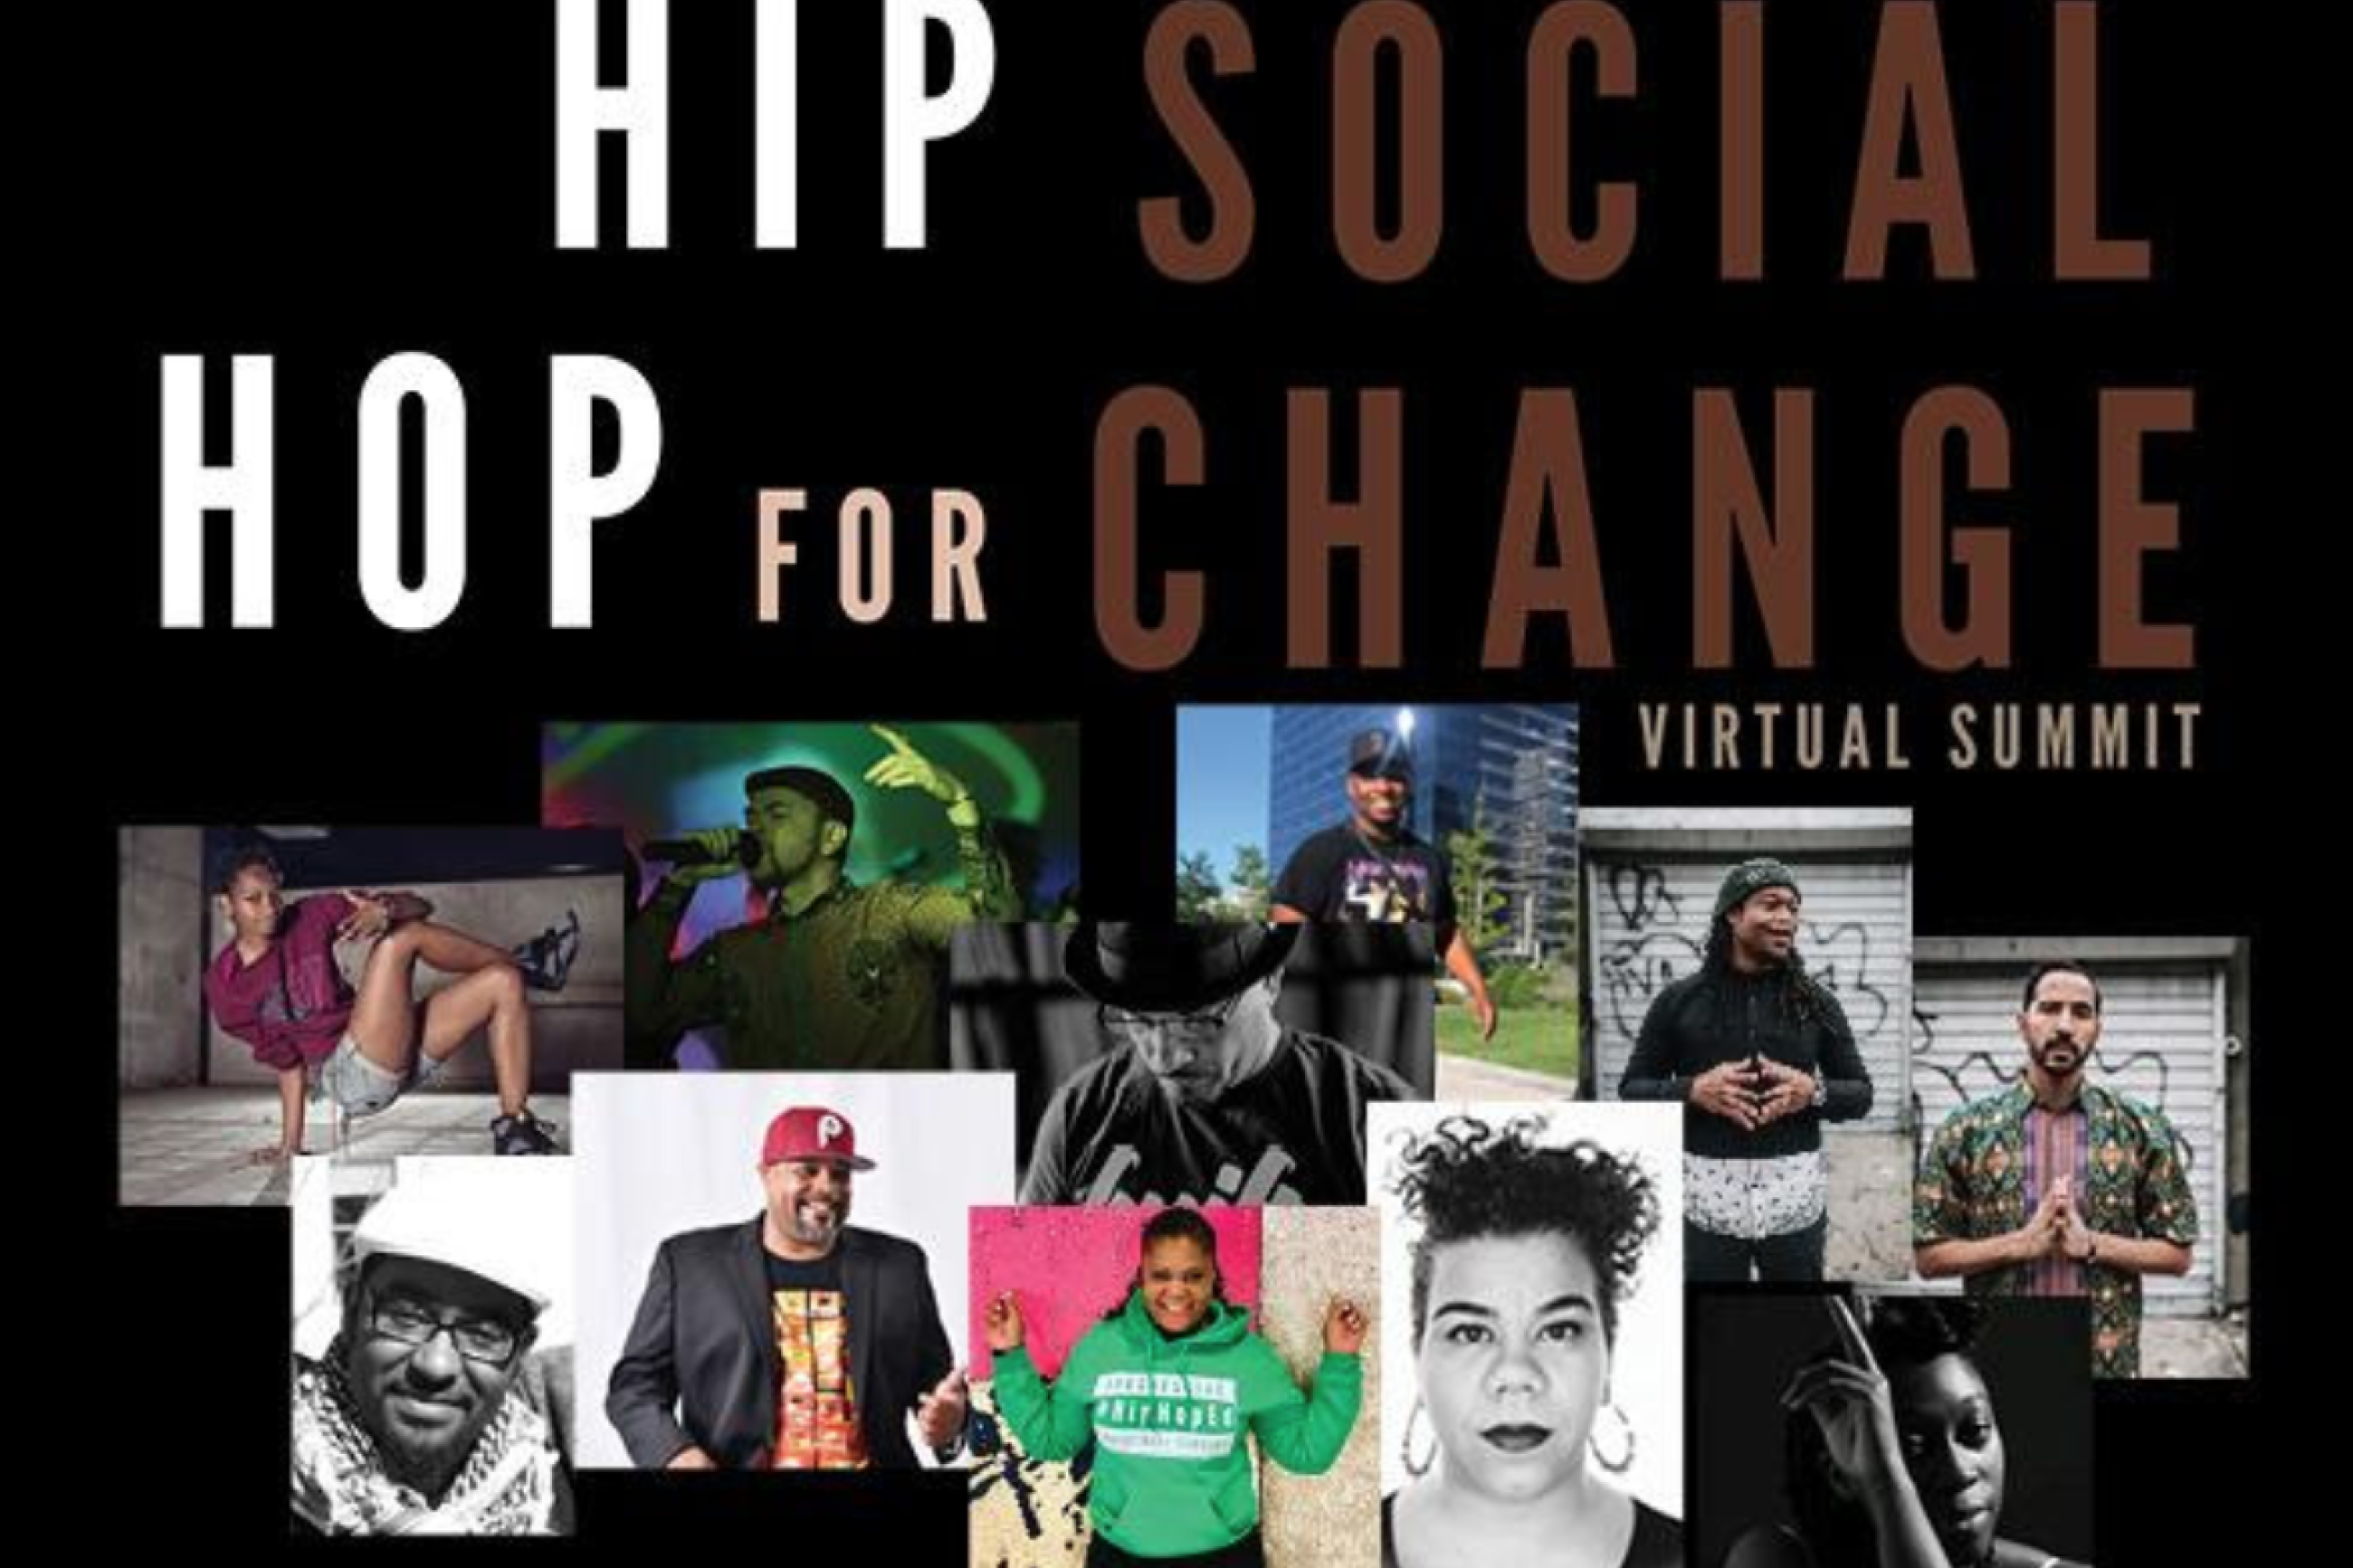 Springfield College Hip-Hop for Social Change Virtual Summit